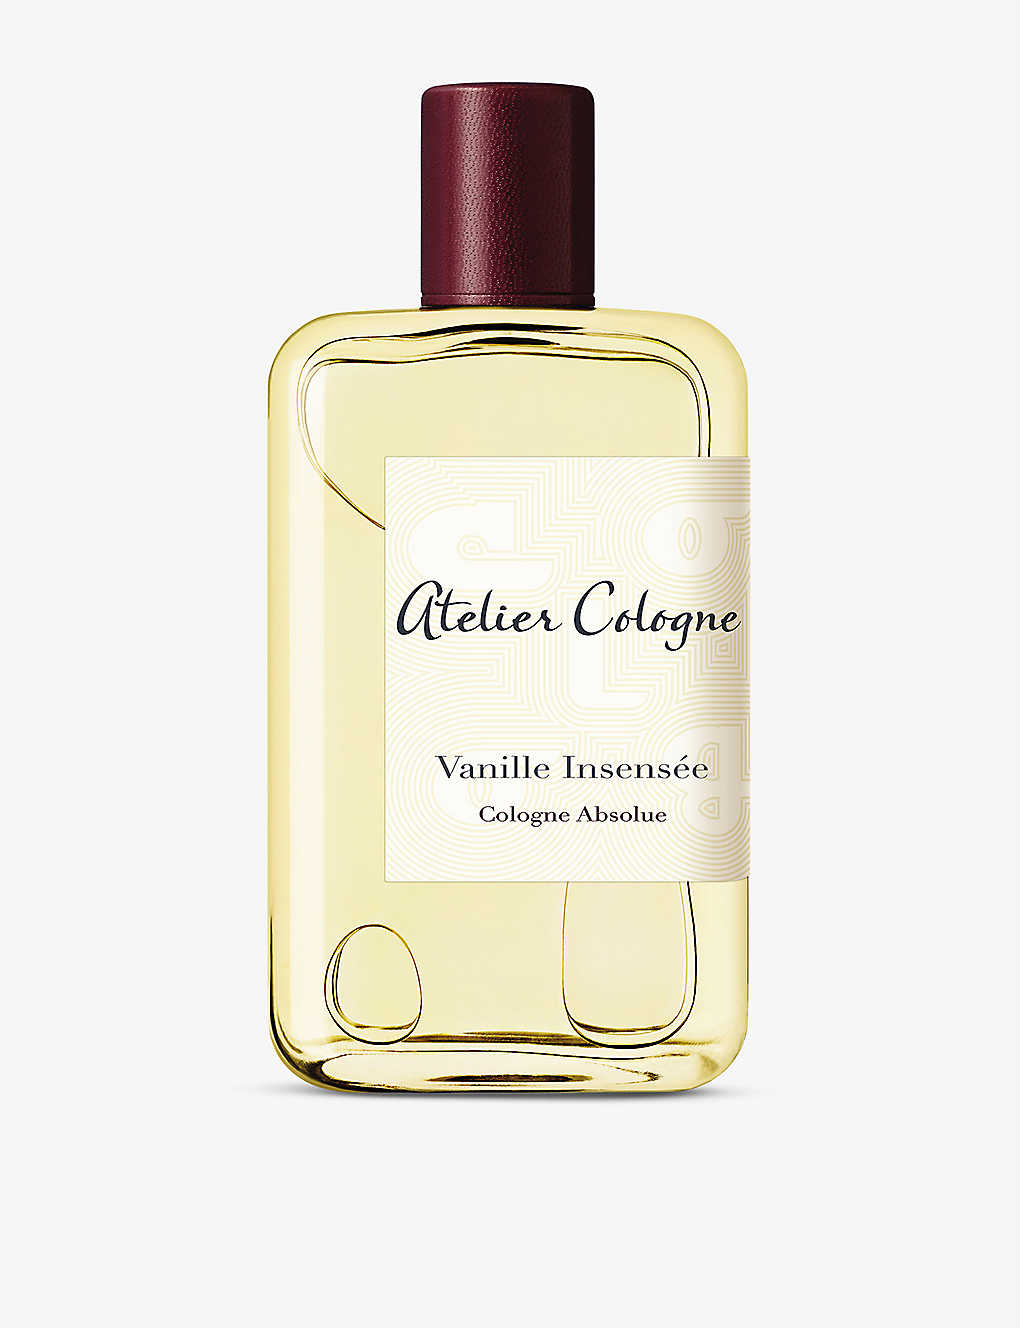 ATELIER COLOGNE: Vanille Insensée Cologne Absolue